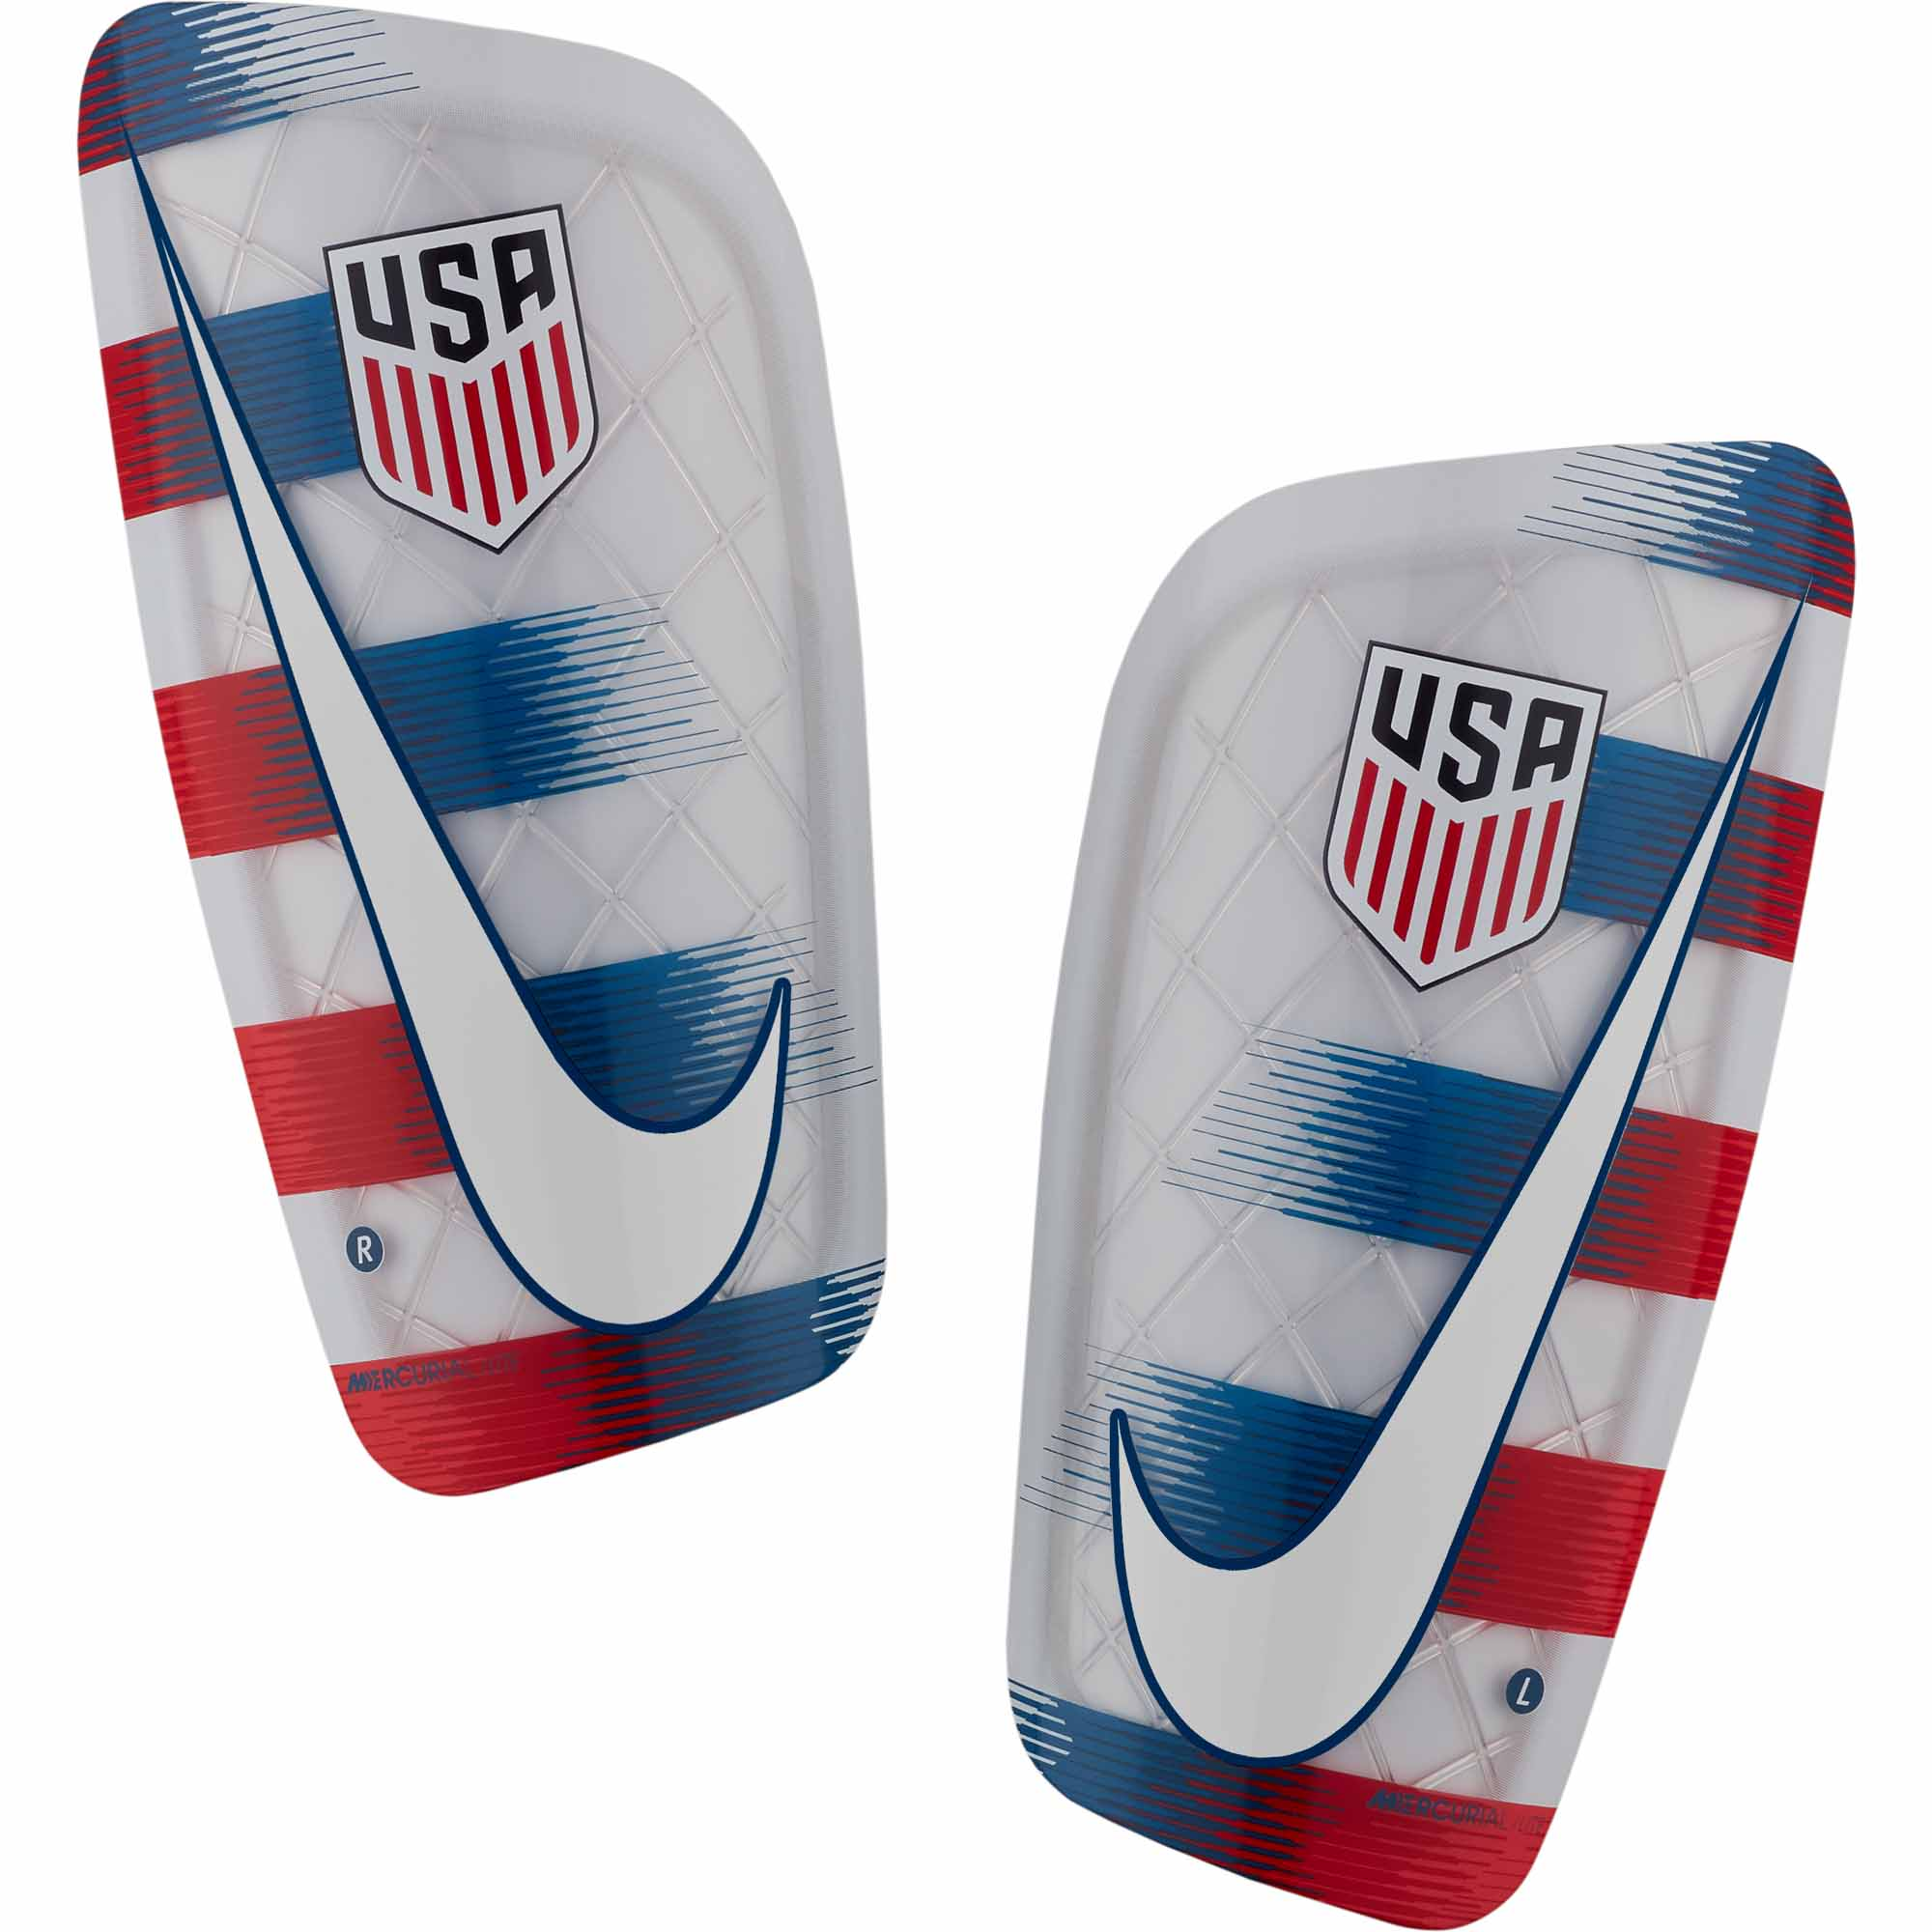 Nike Mercurial Lite Shin Guards - USA - White   University Red ... 46c942bb7